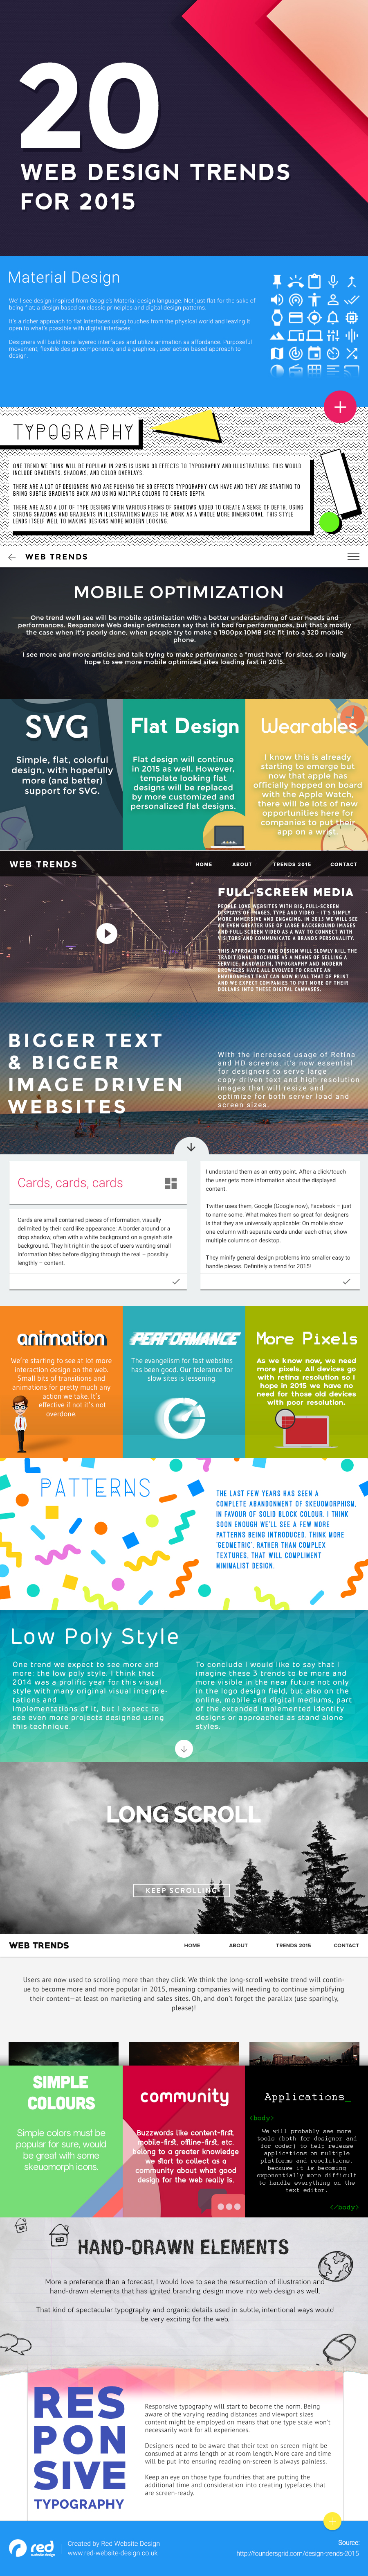 The Web Design Industry Has Seen Many Changes Over The Years With New Technology Giving Rise To New Screen Sizes Web Design Trends Web Design Tips Web Design